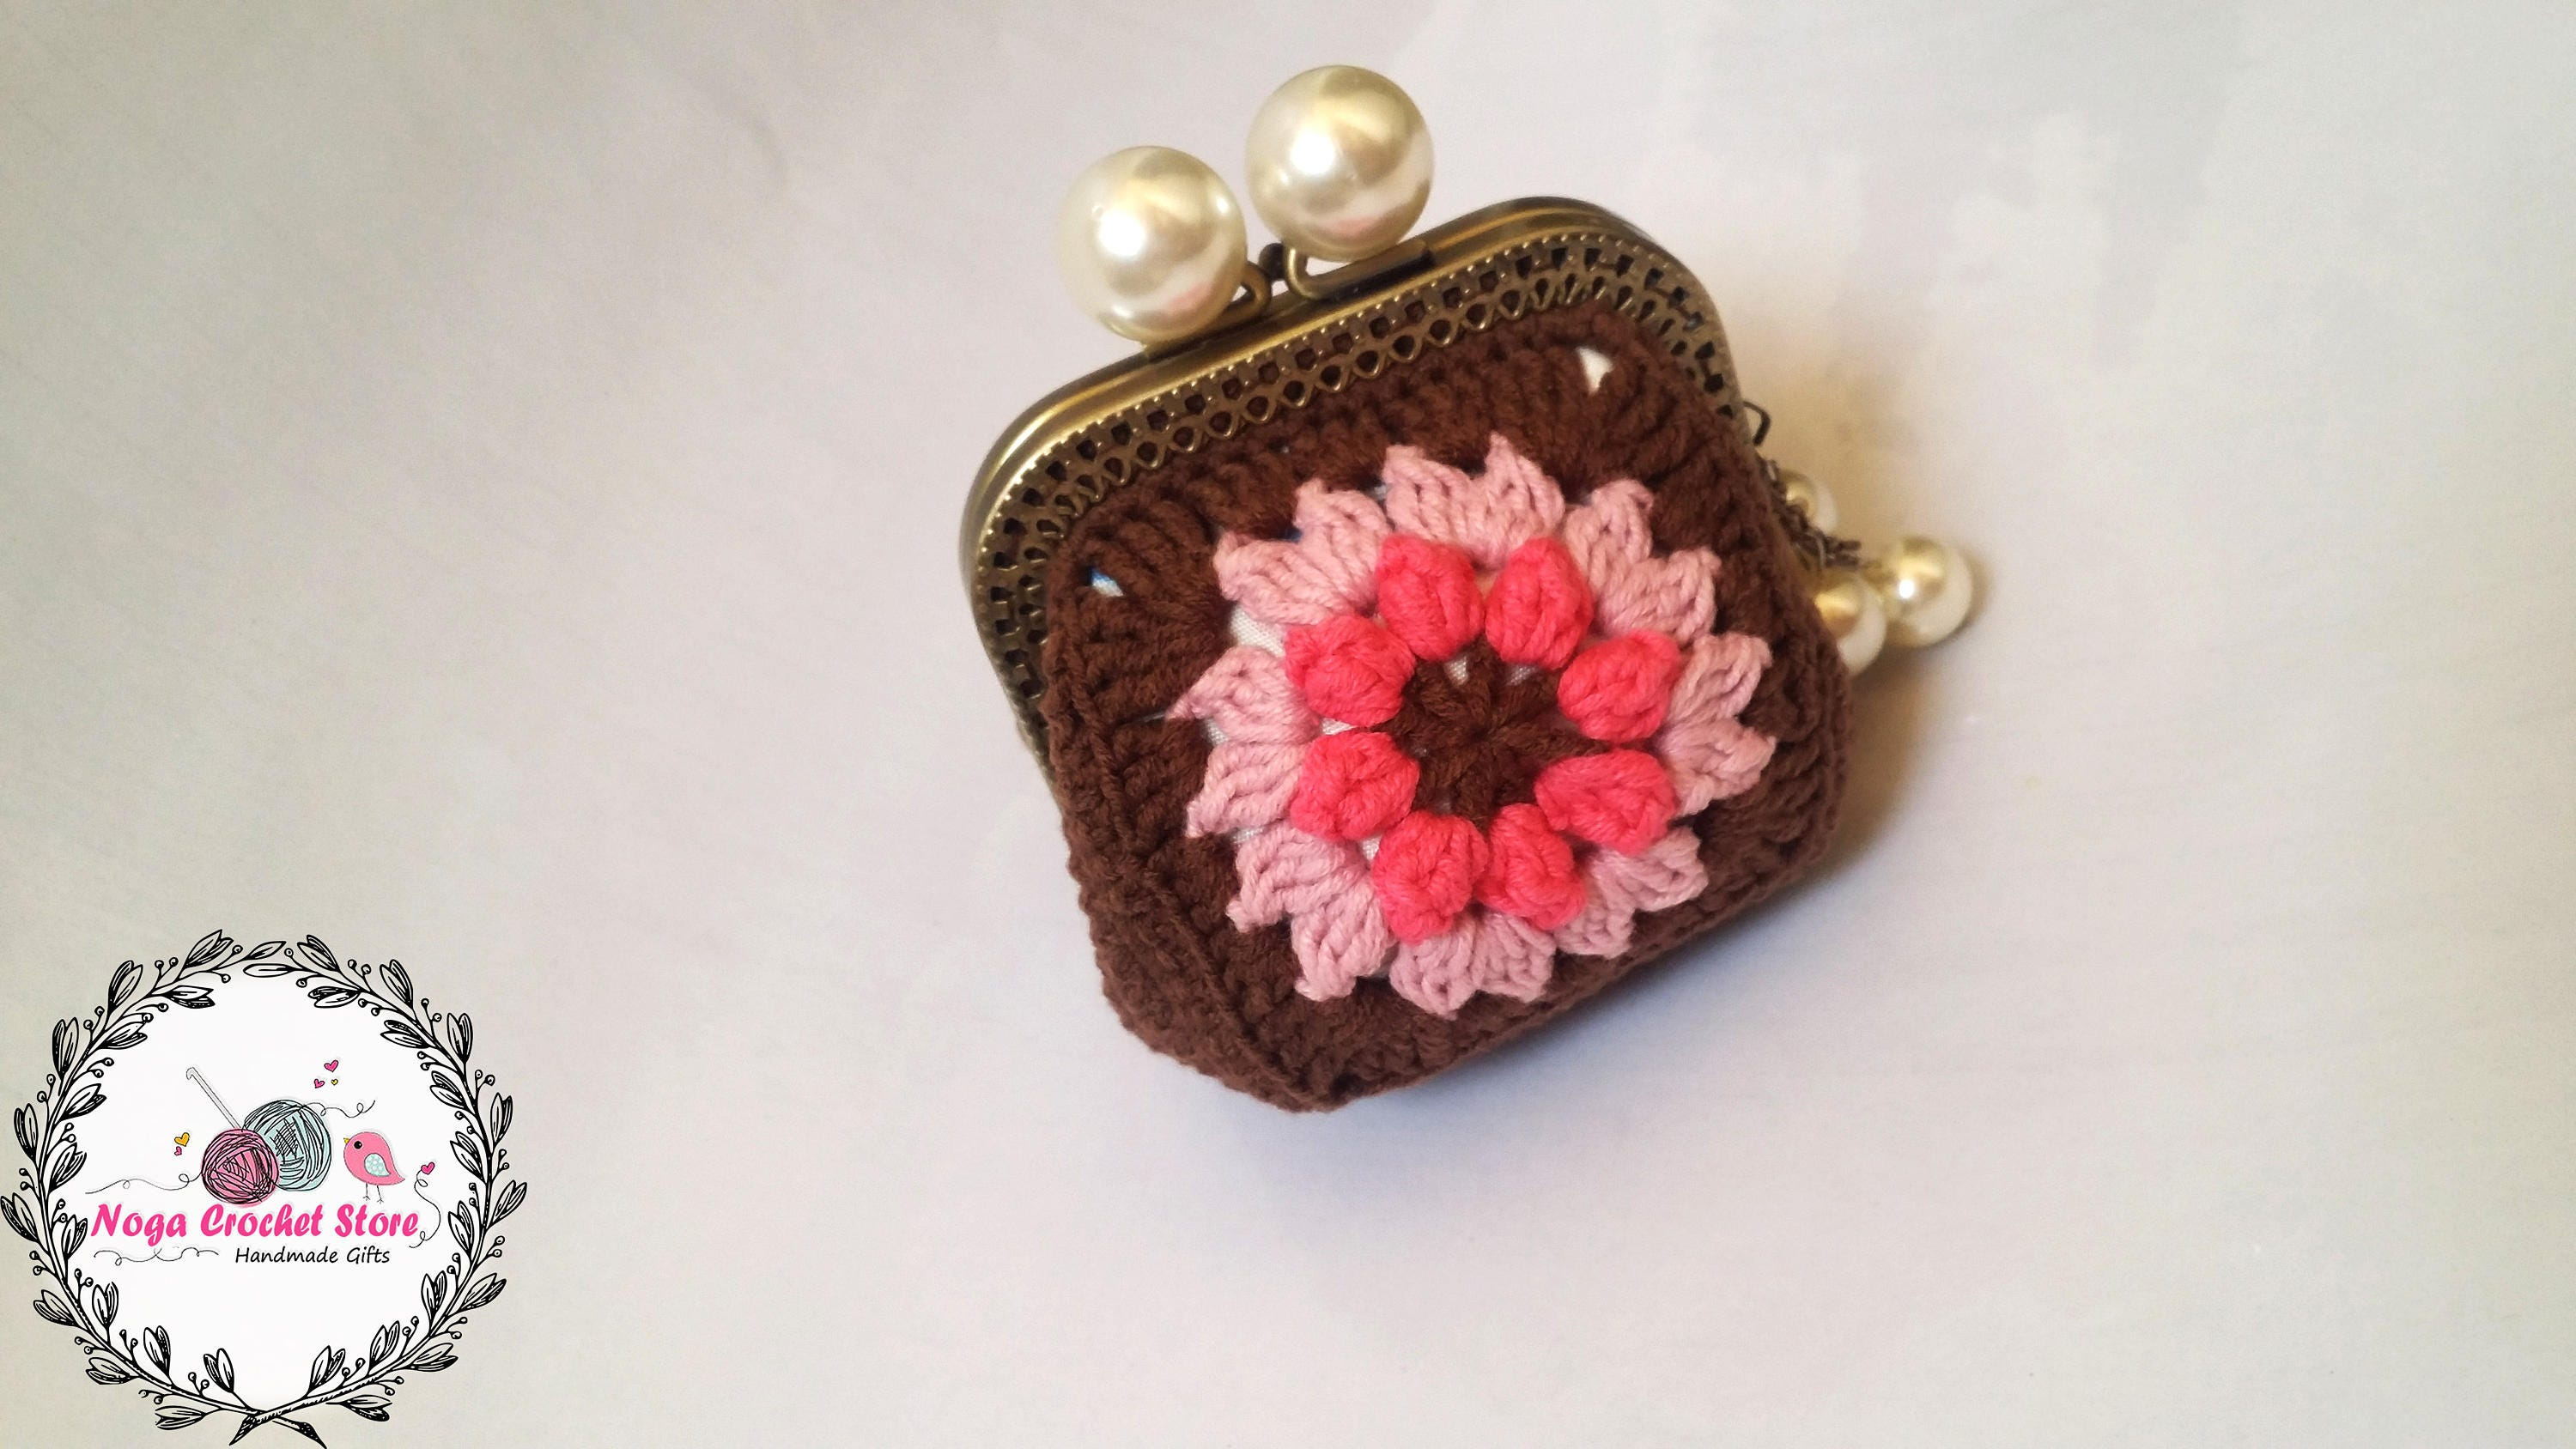 Crochet Square Coin Purse Pink Flower Bag Handmade Brown Pouch